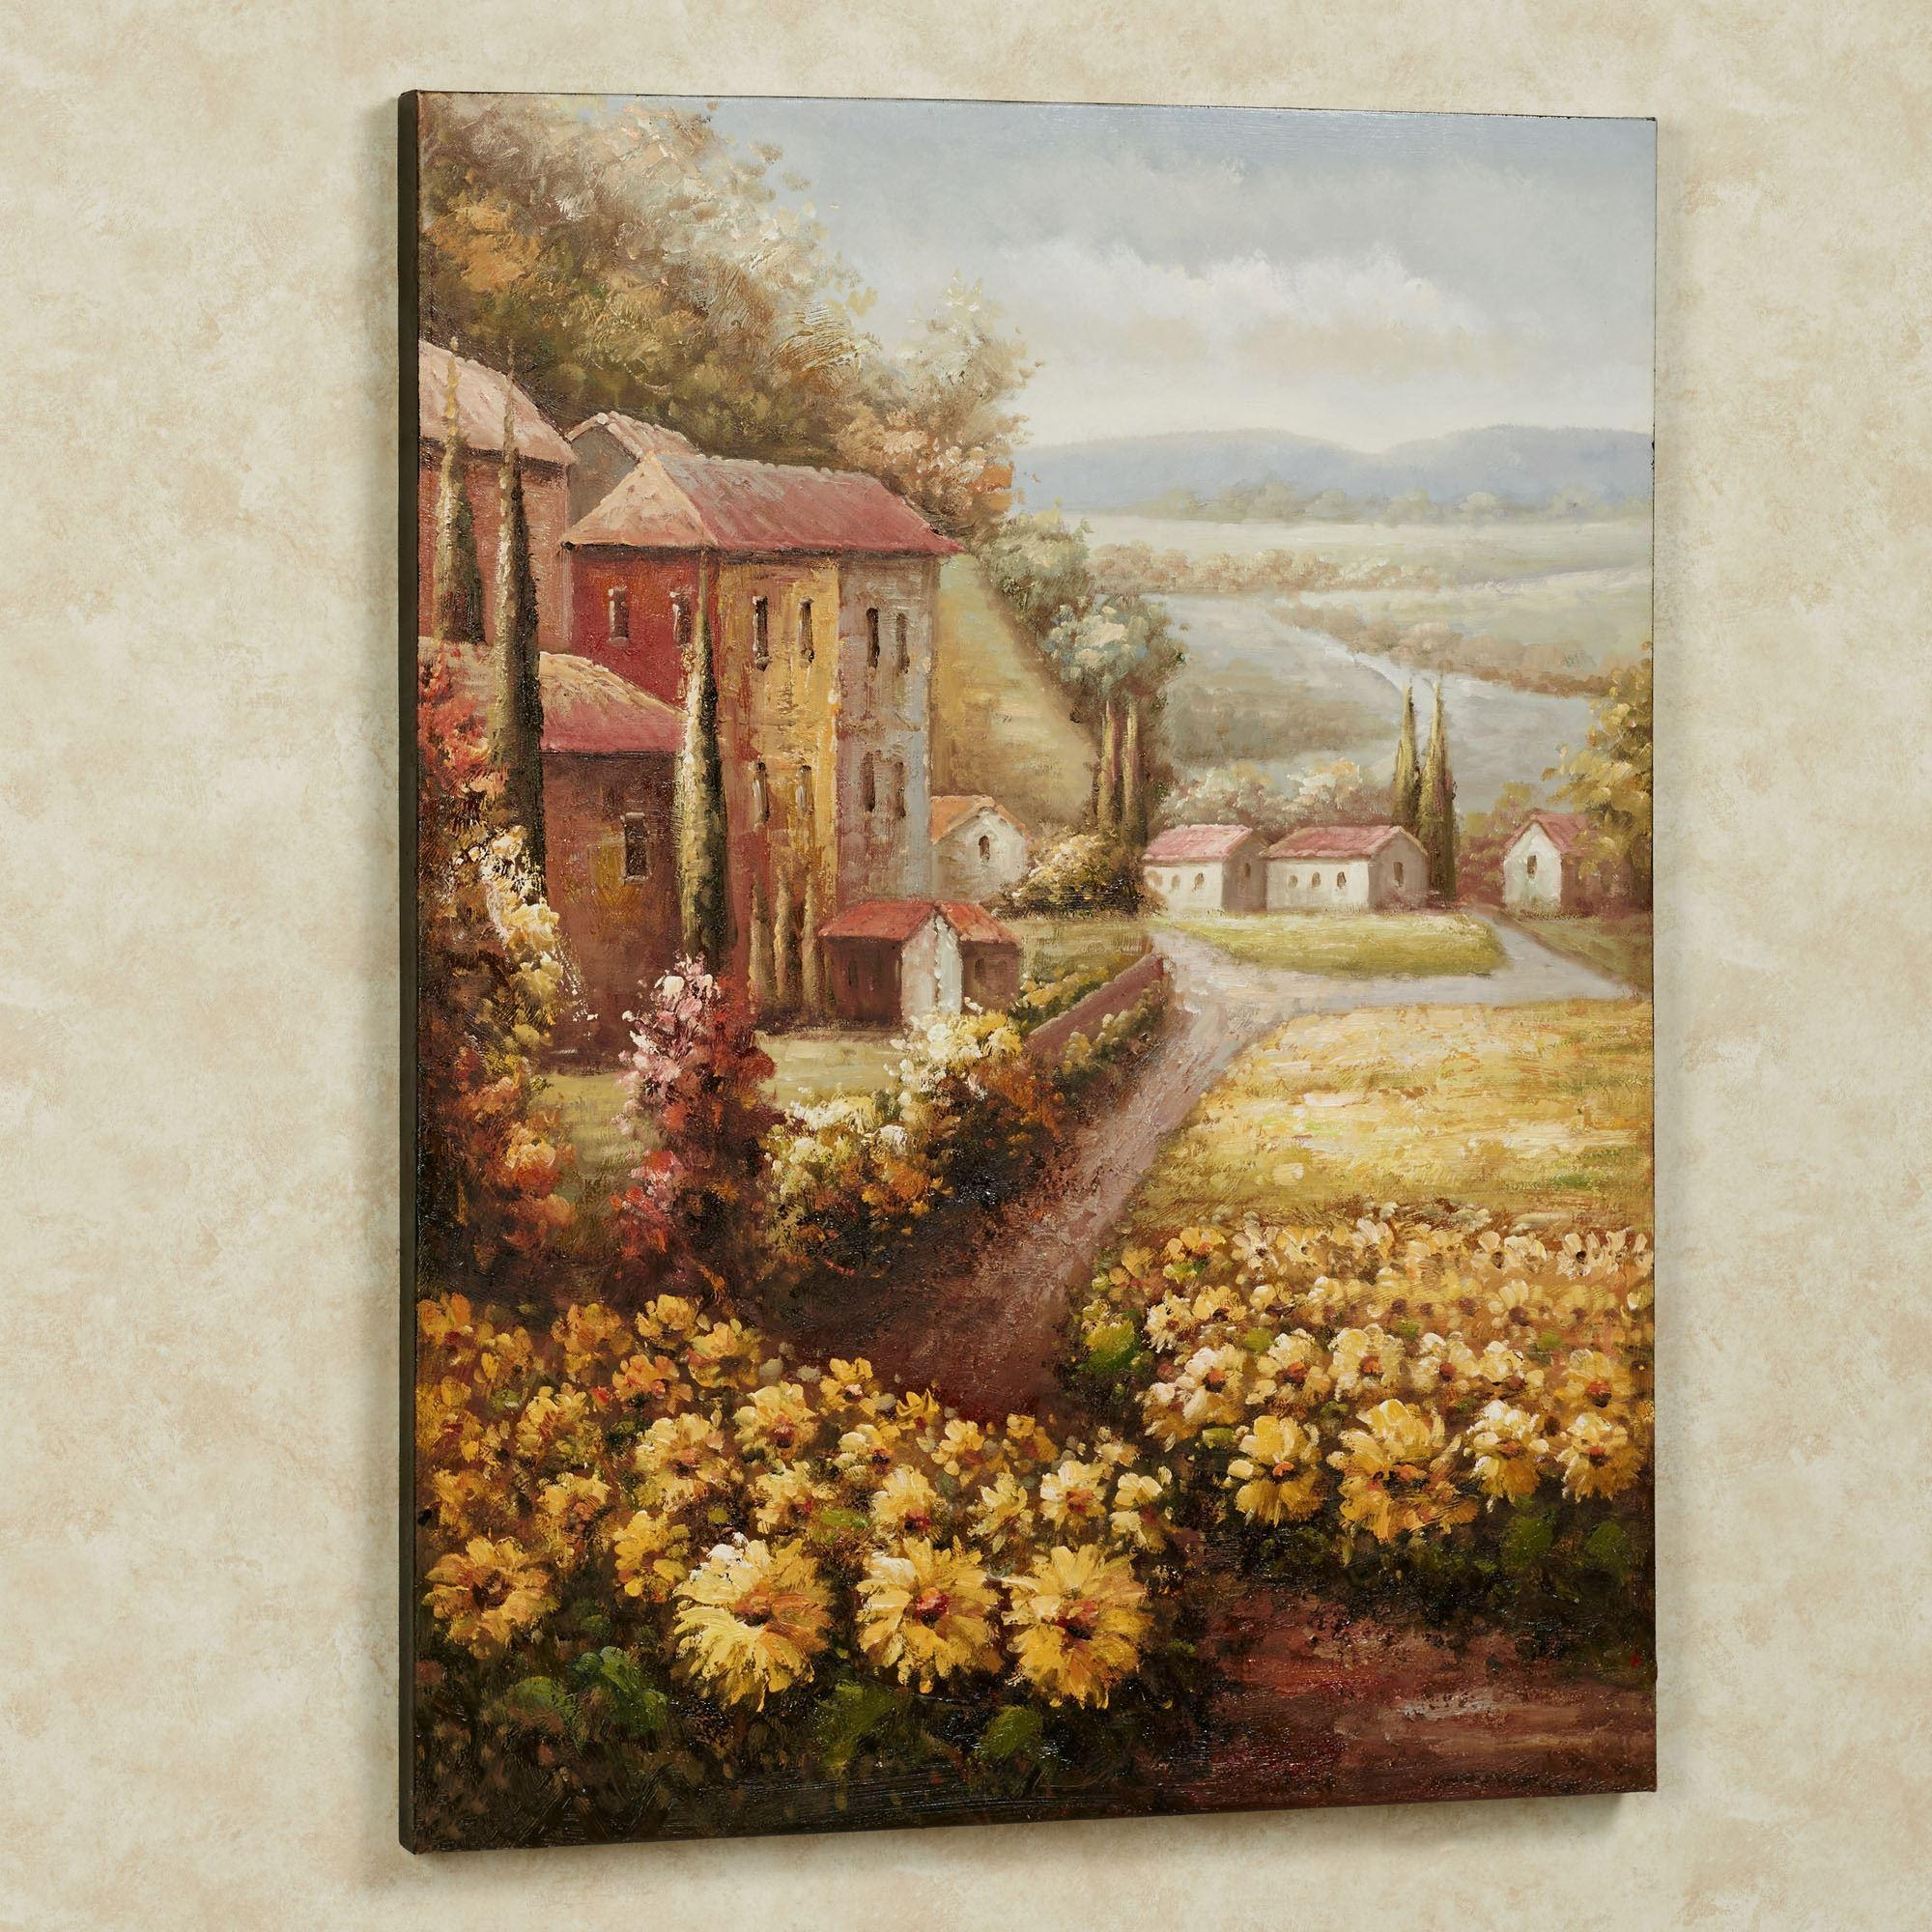 Tuscan Italian Art   Touch Of Class Pertaining To Italian Overlook Framed Wall Art Sets (Image 18 of 20)